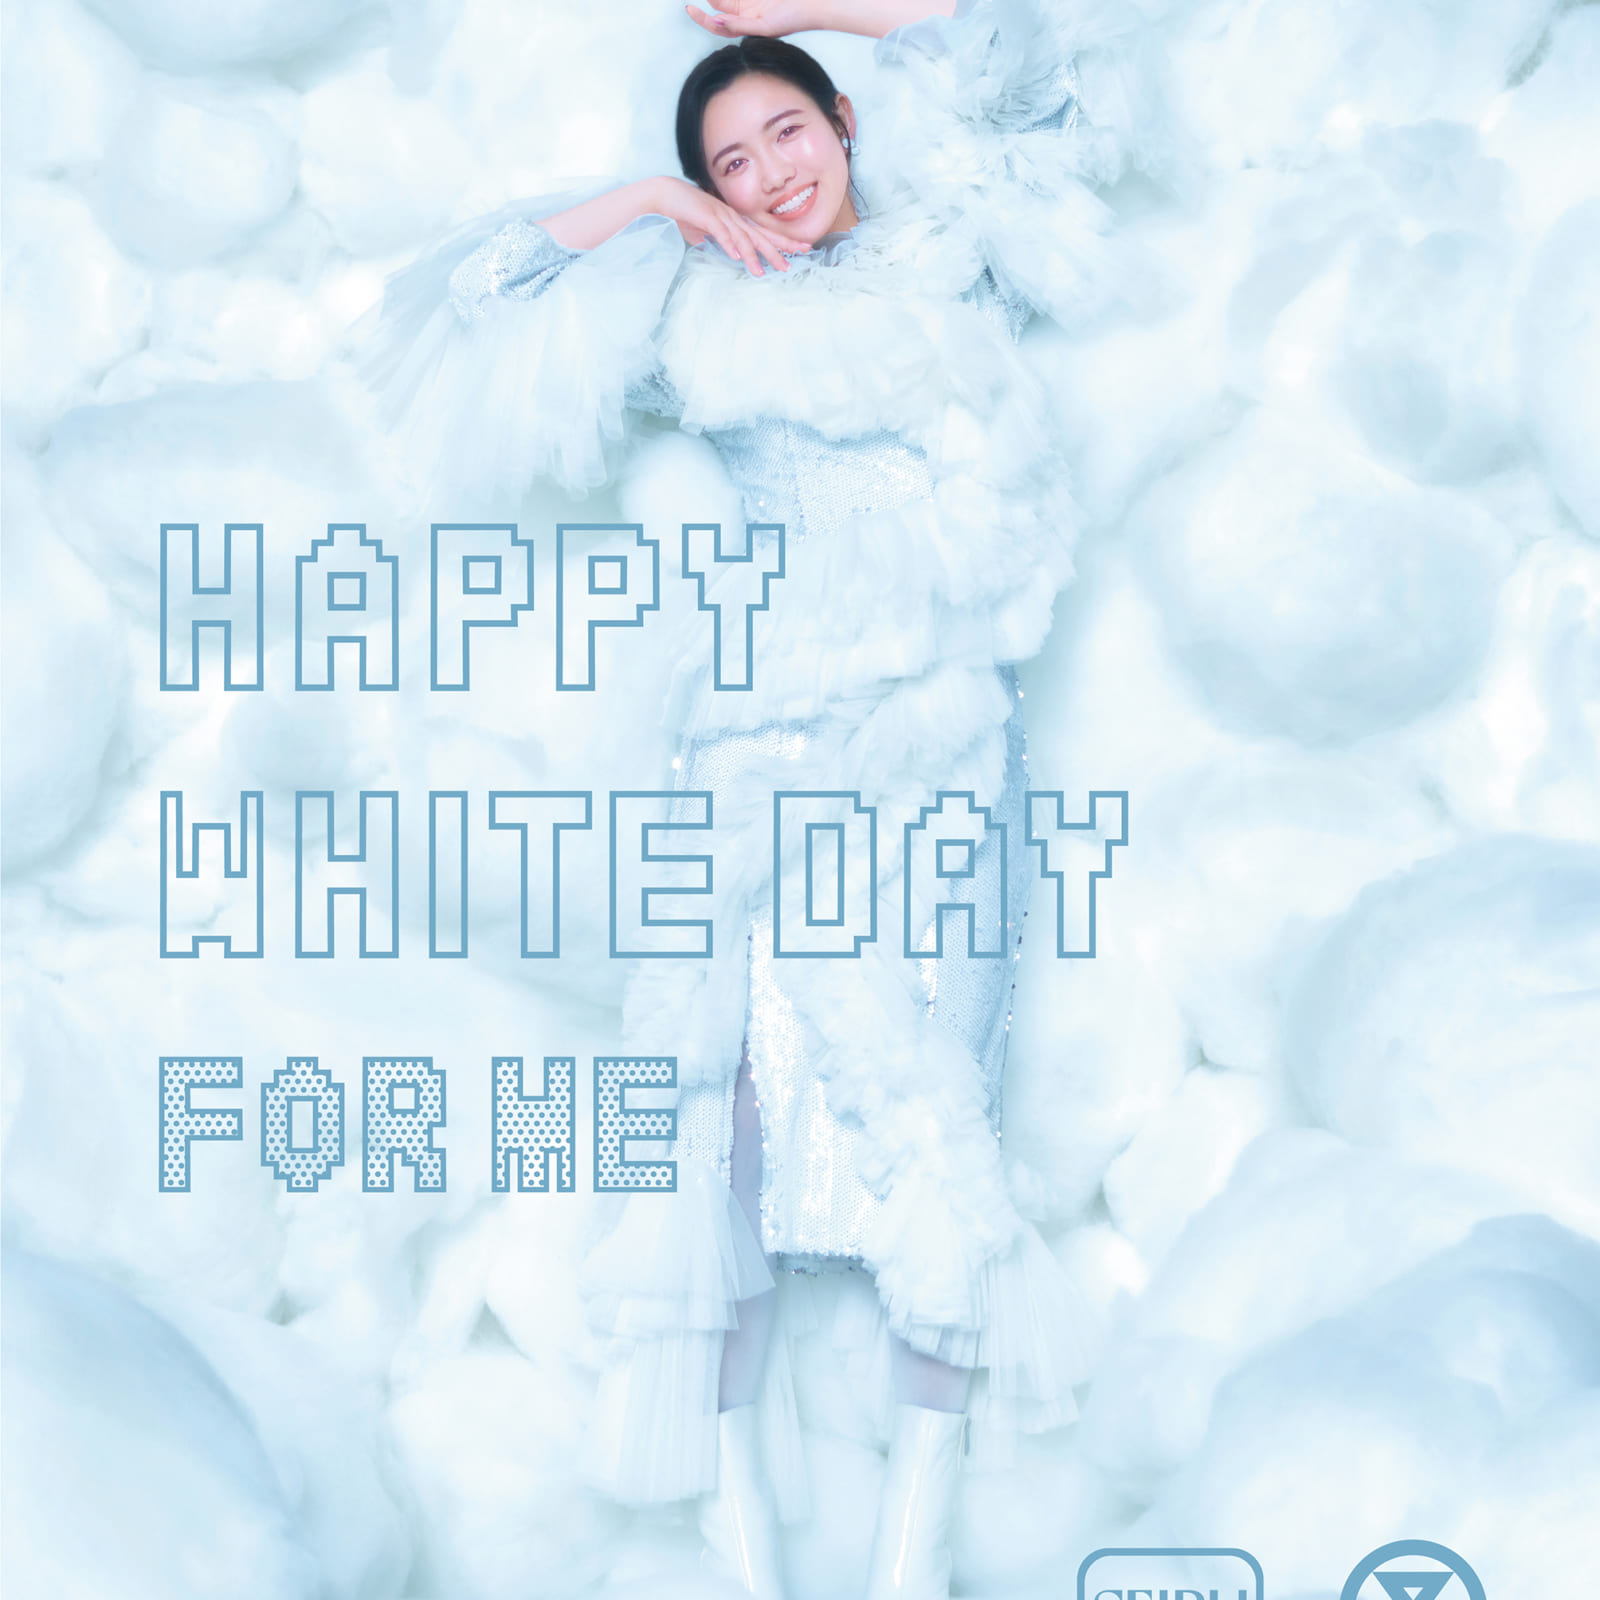 E-girls 山口乃々華が出演 「HAPPY WHITE DAY FOR MEありがとうを あなたにも 私にも」